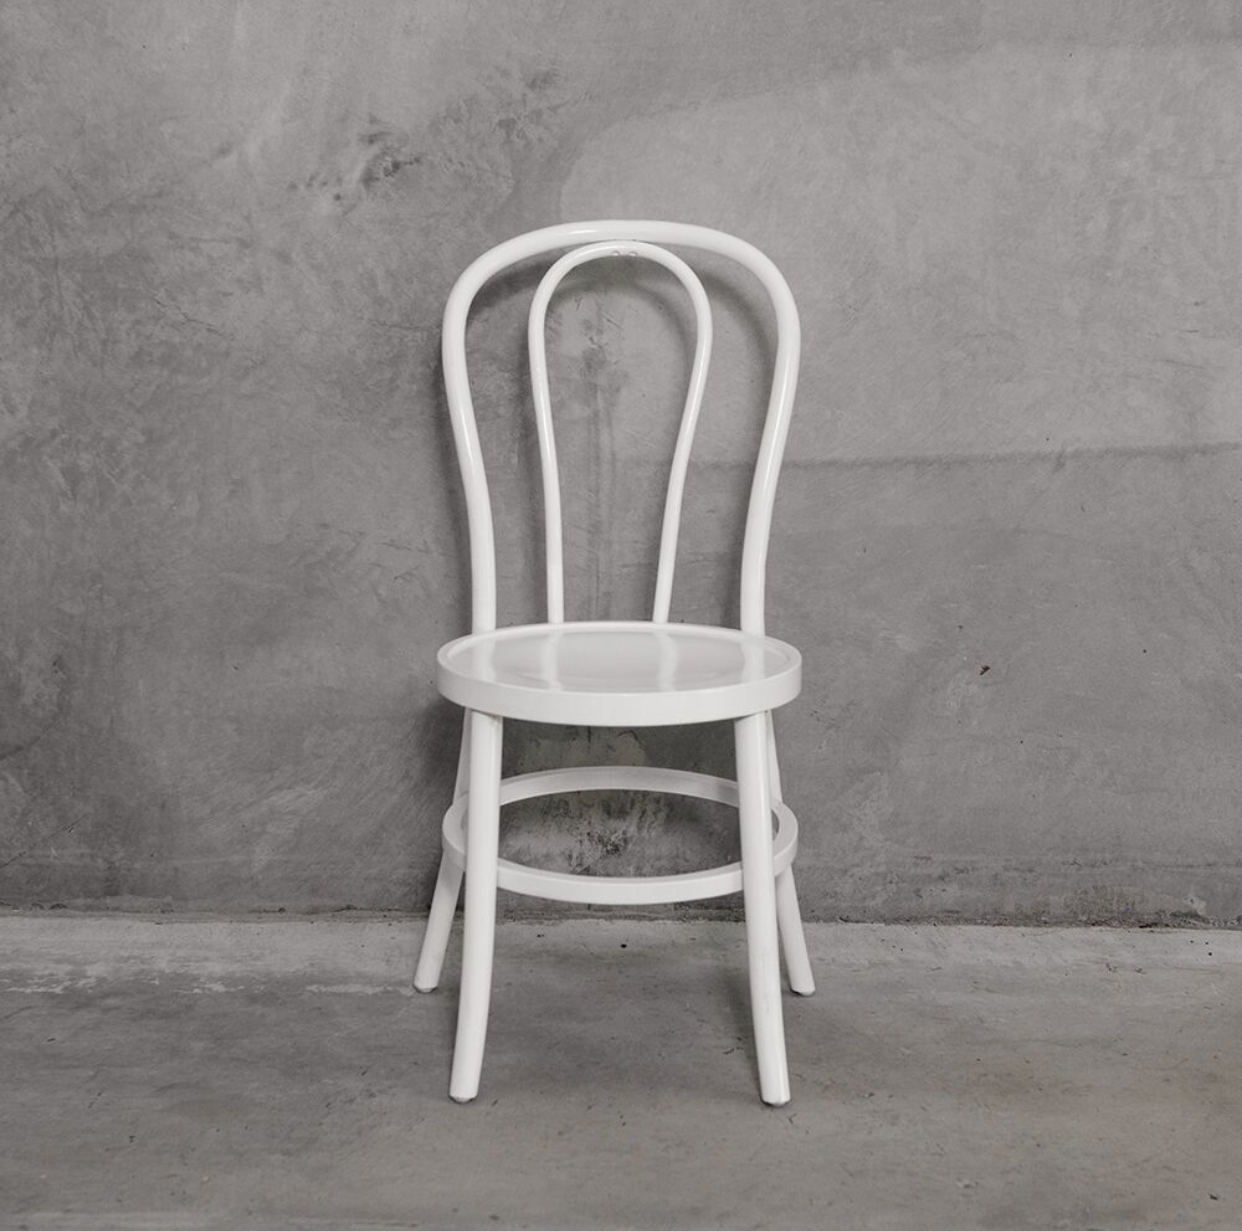 Bentwood chairs (white)